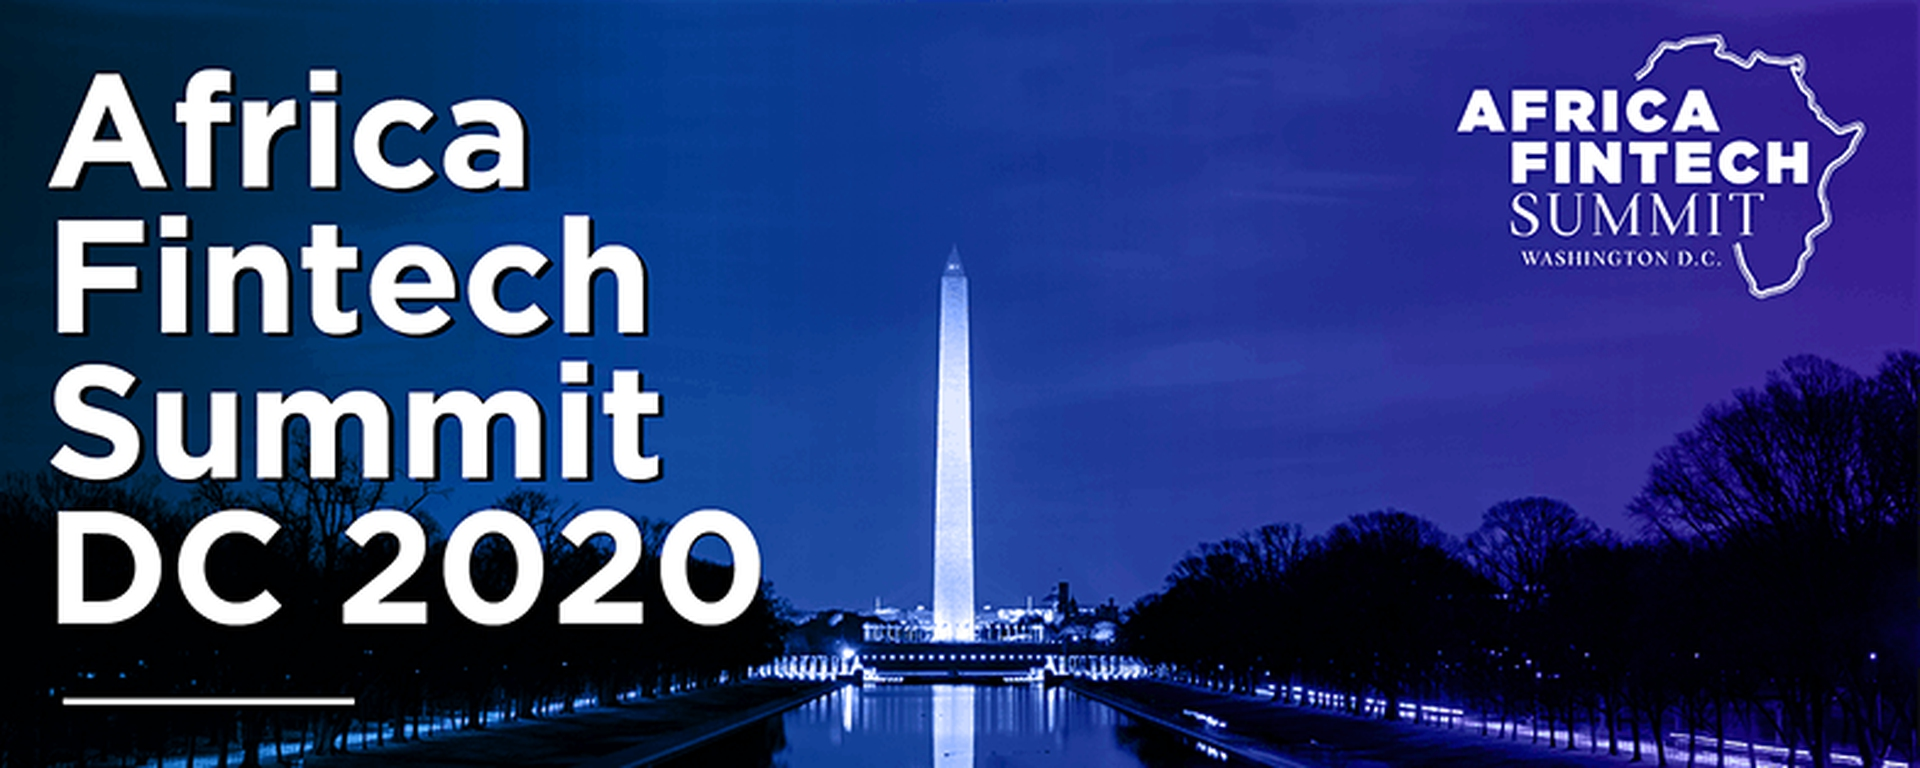 The Africa Fintech Summit - Africa Fintech Summit DC 2020 Movemeback African event cover image